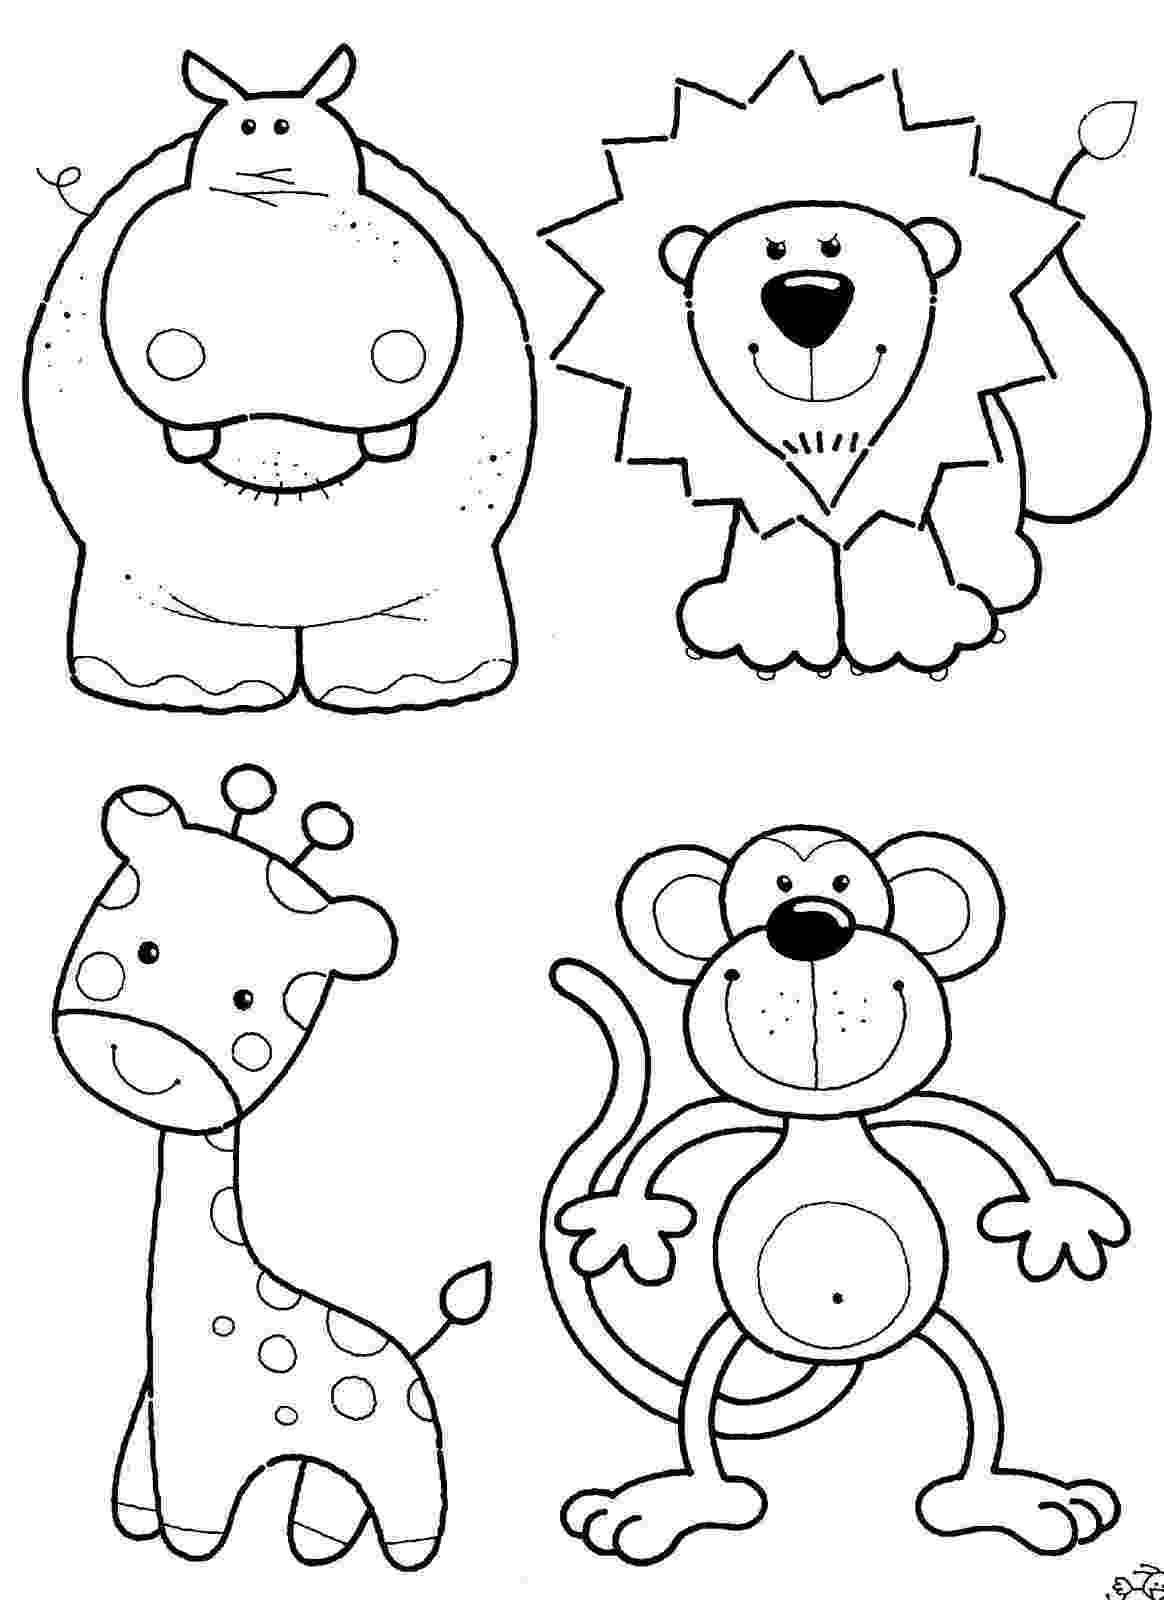 free baby animal coloring pages to print free printable farm animal coloring pages for kids baby free to animal pages coloring print